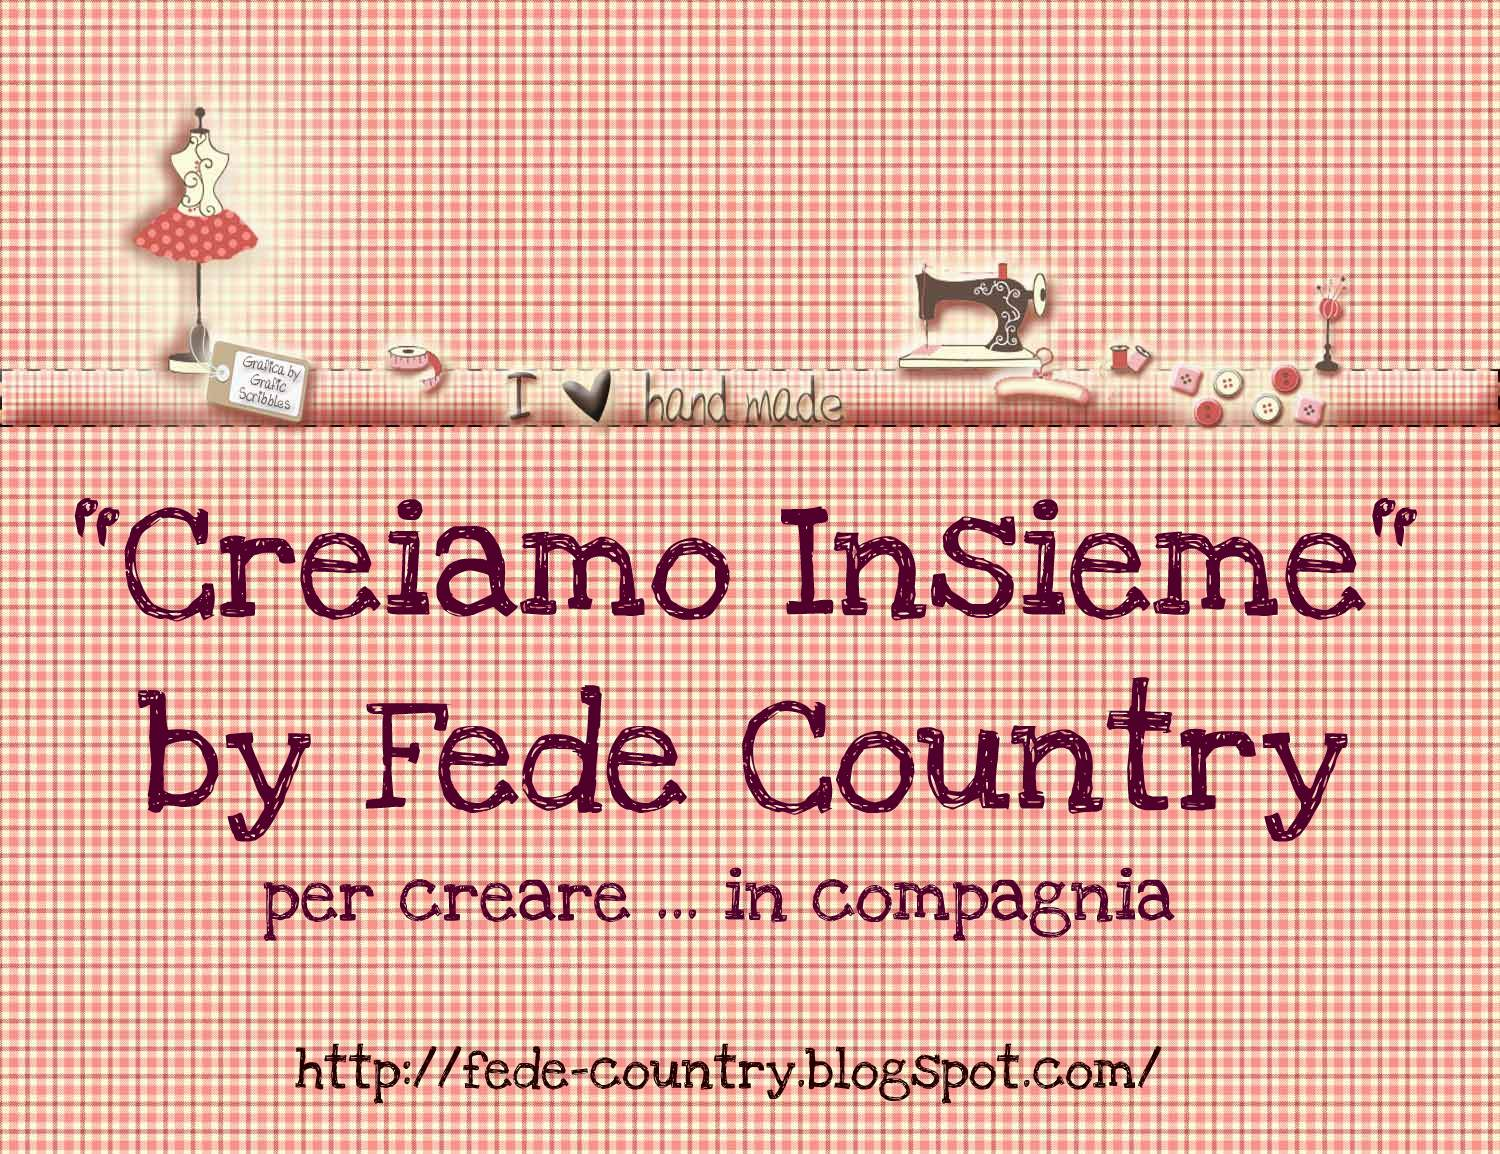 Sal di Fede_Country